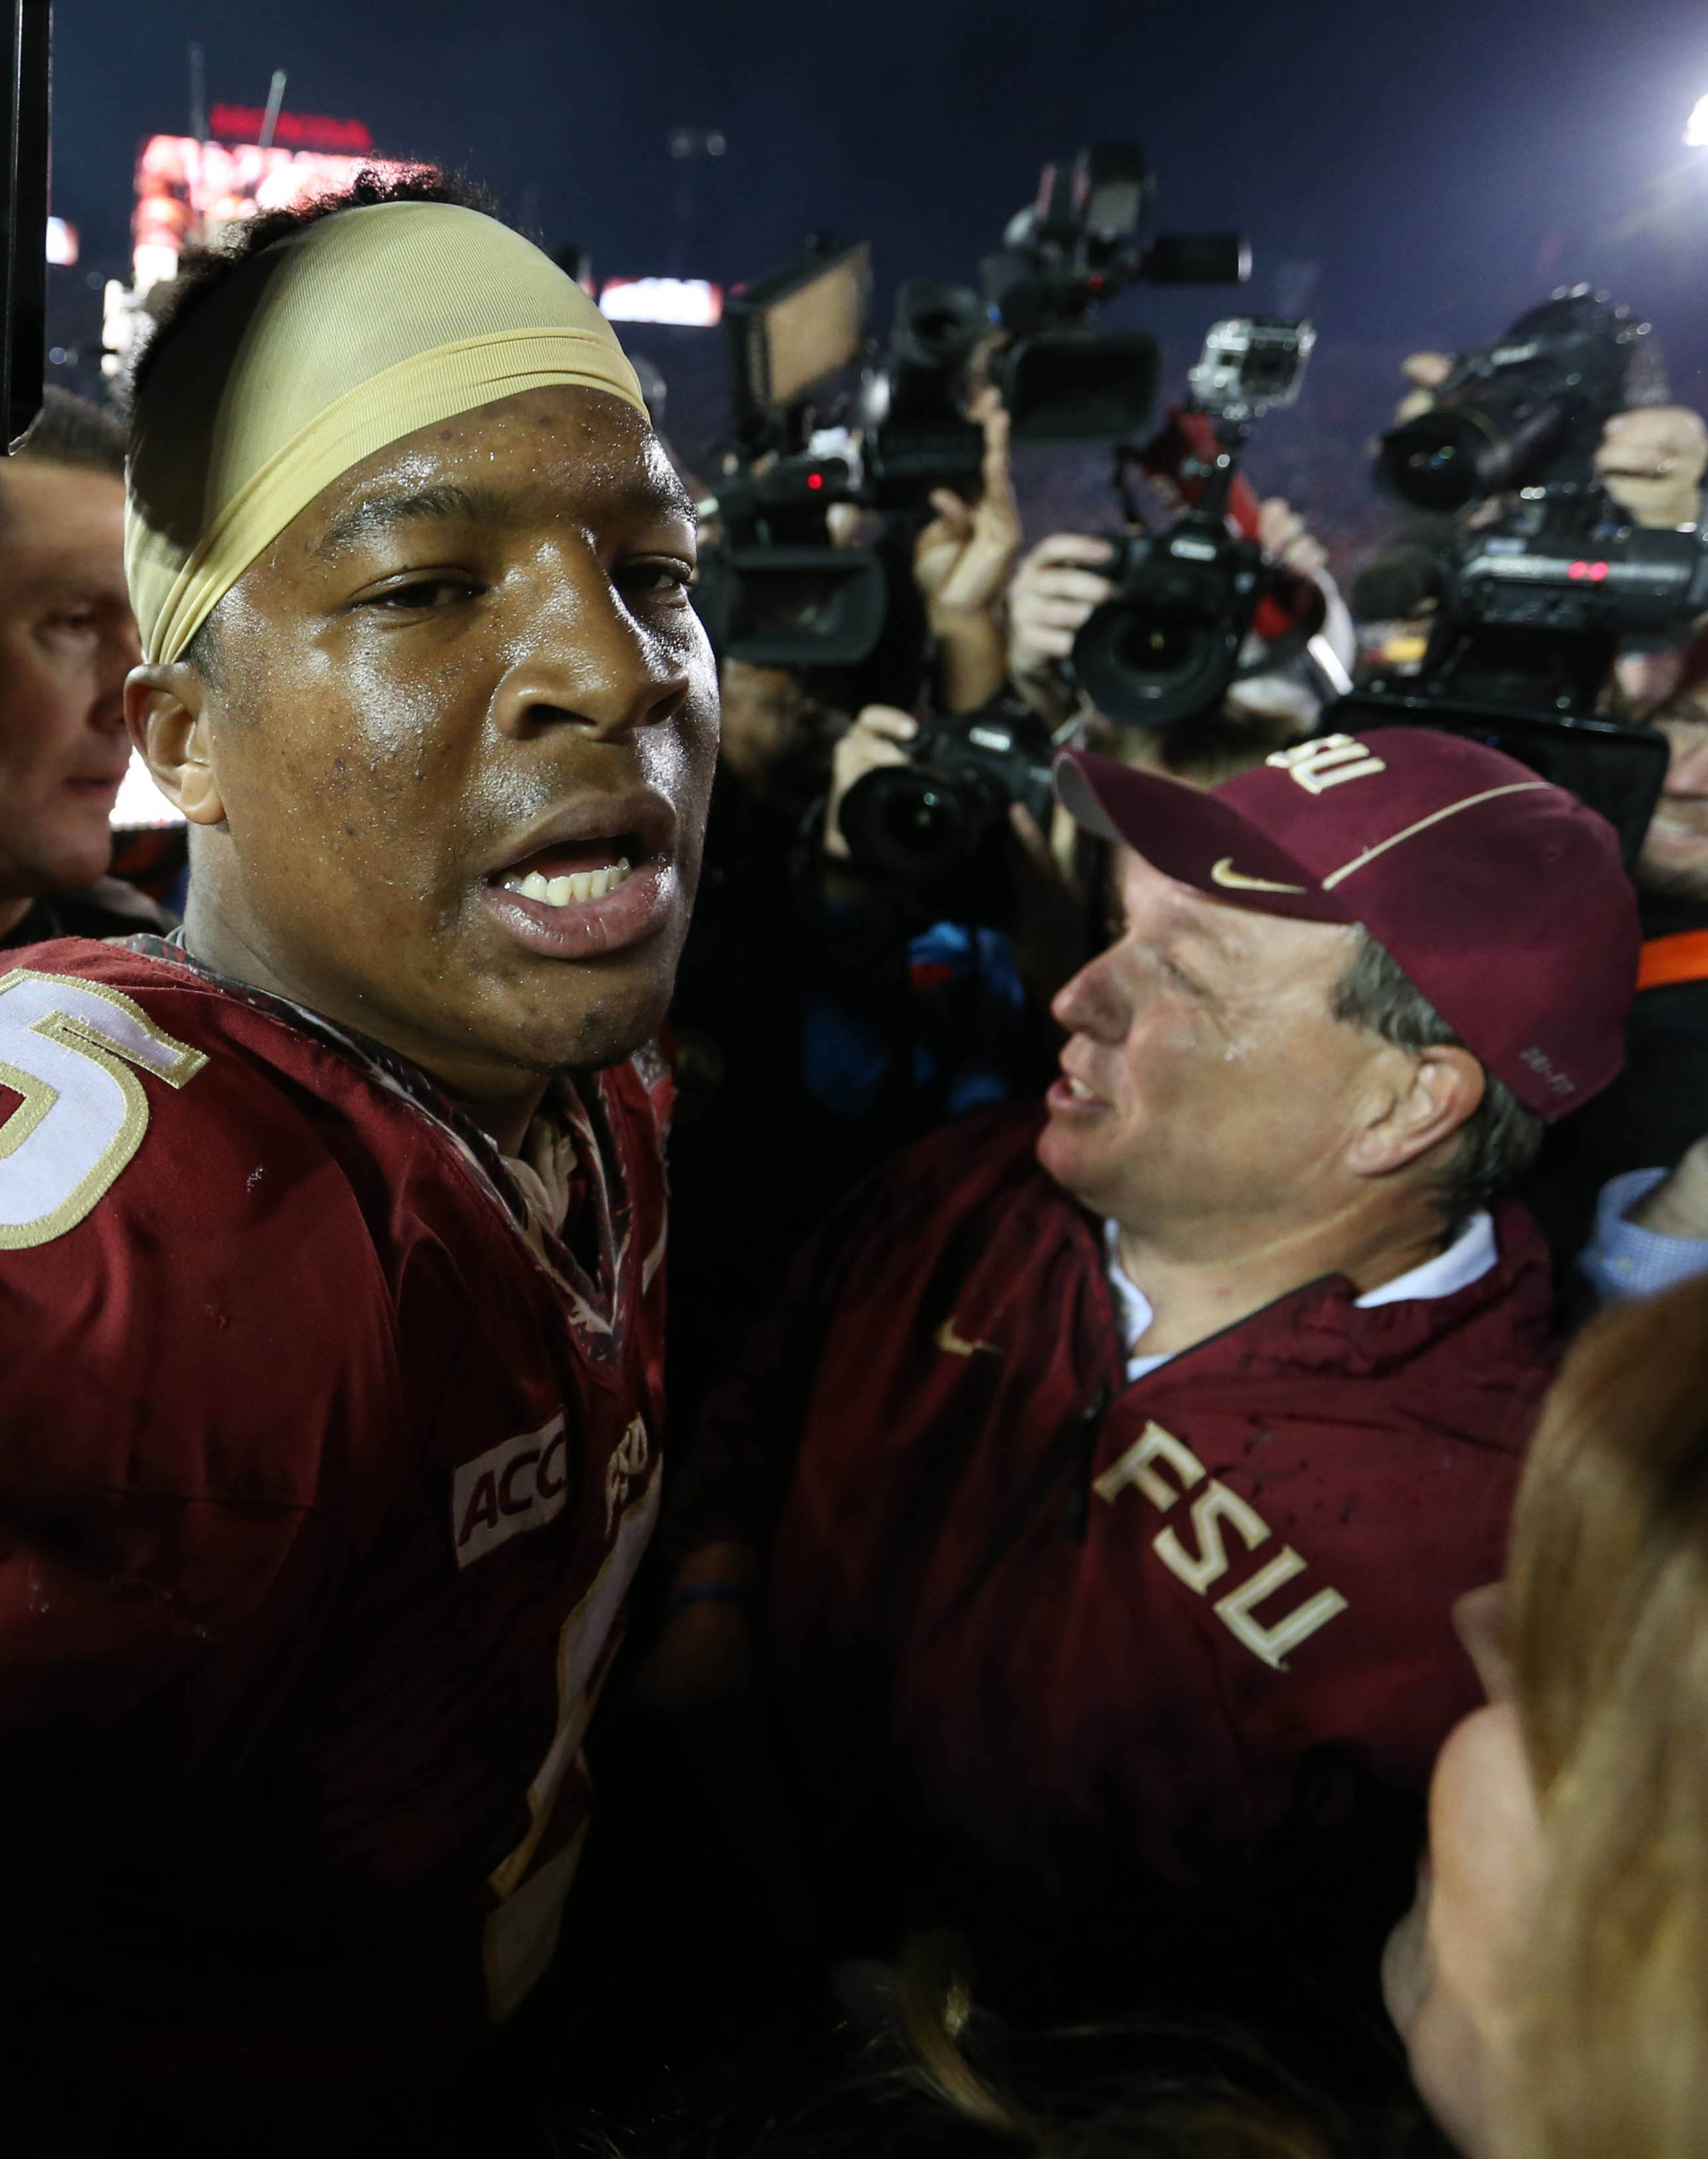 Jan 6, 2014; Pasadena, CA, USA; Florida State Seminoles head coach Jimbo Fisher (right) celebrates with Jameis Winston (5) after defeating the Auburn Tigers 34-31 in the 2014 BCS National Championship game at the Rose Bowl.  Mandatory Credit: Matthew Emmons-USA TODAY Sports